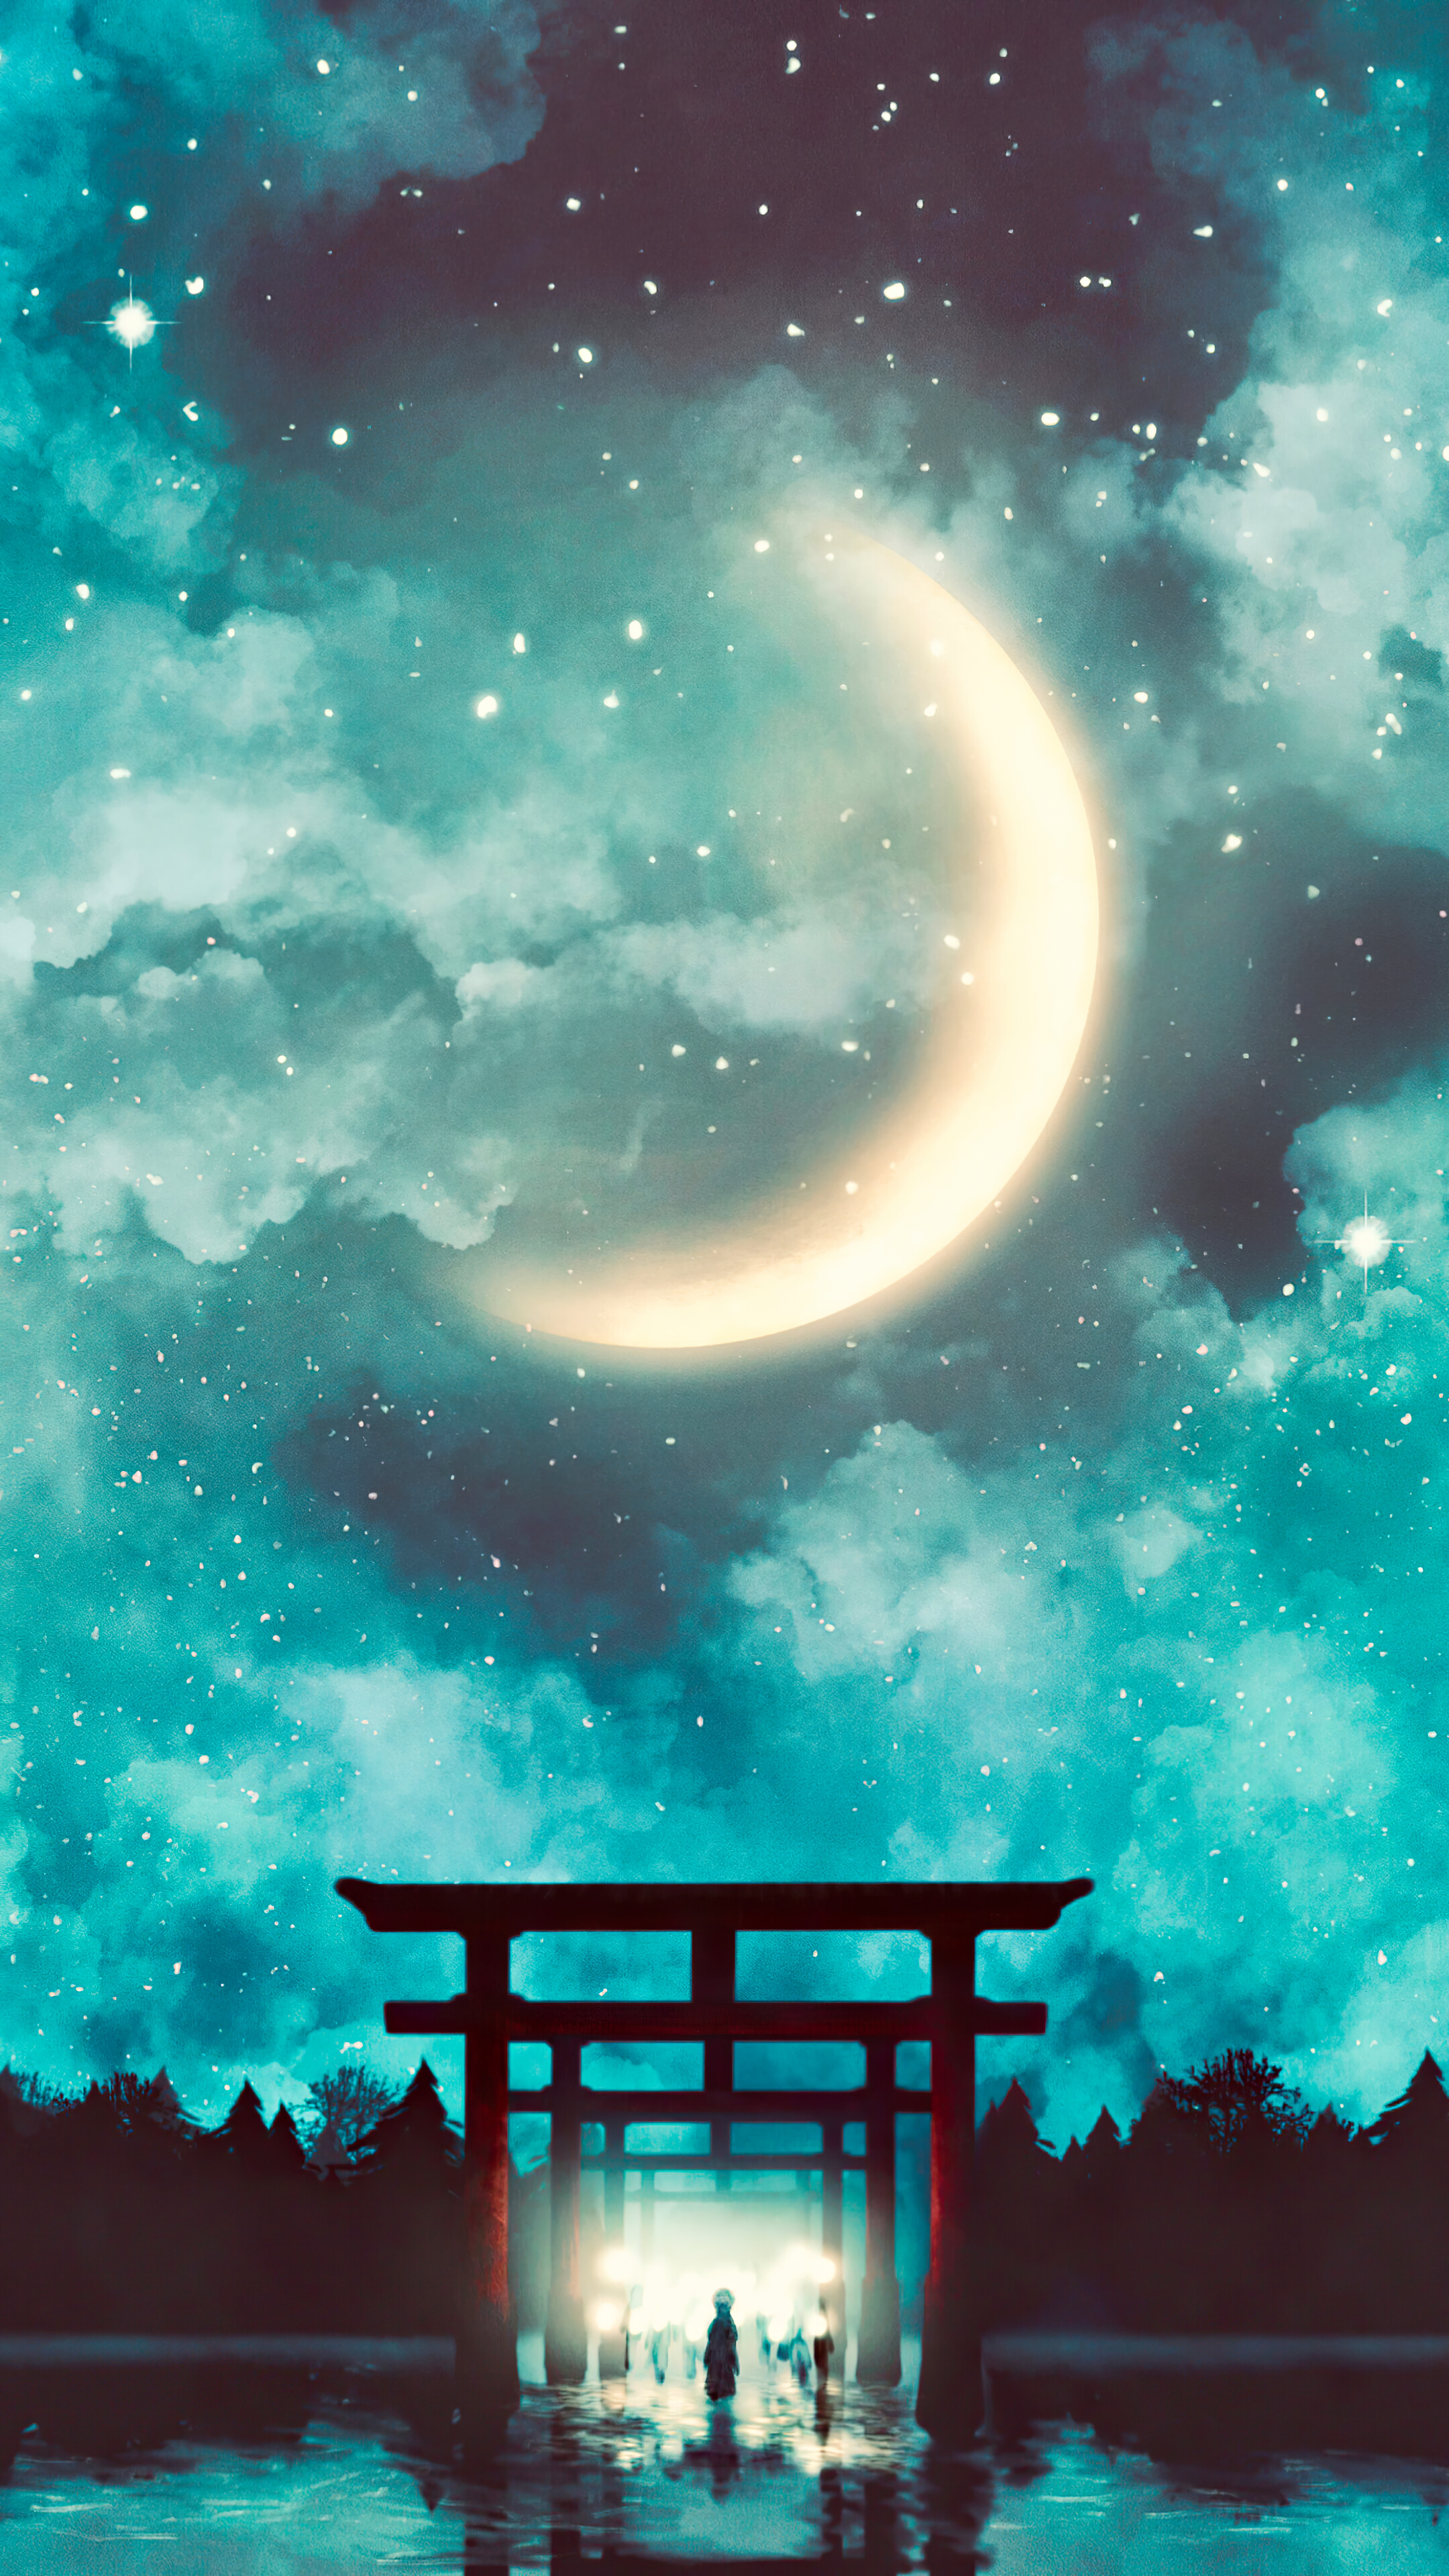 Anime Scenery Wallpaper 4k Phone Anime Nature Aesthetic Wallpapers On Wallpaperdog We Hope You Enjoy Our Growing Collection Of Hd Images